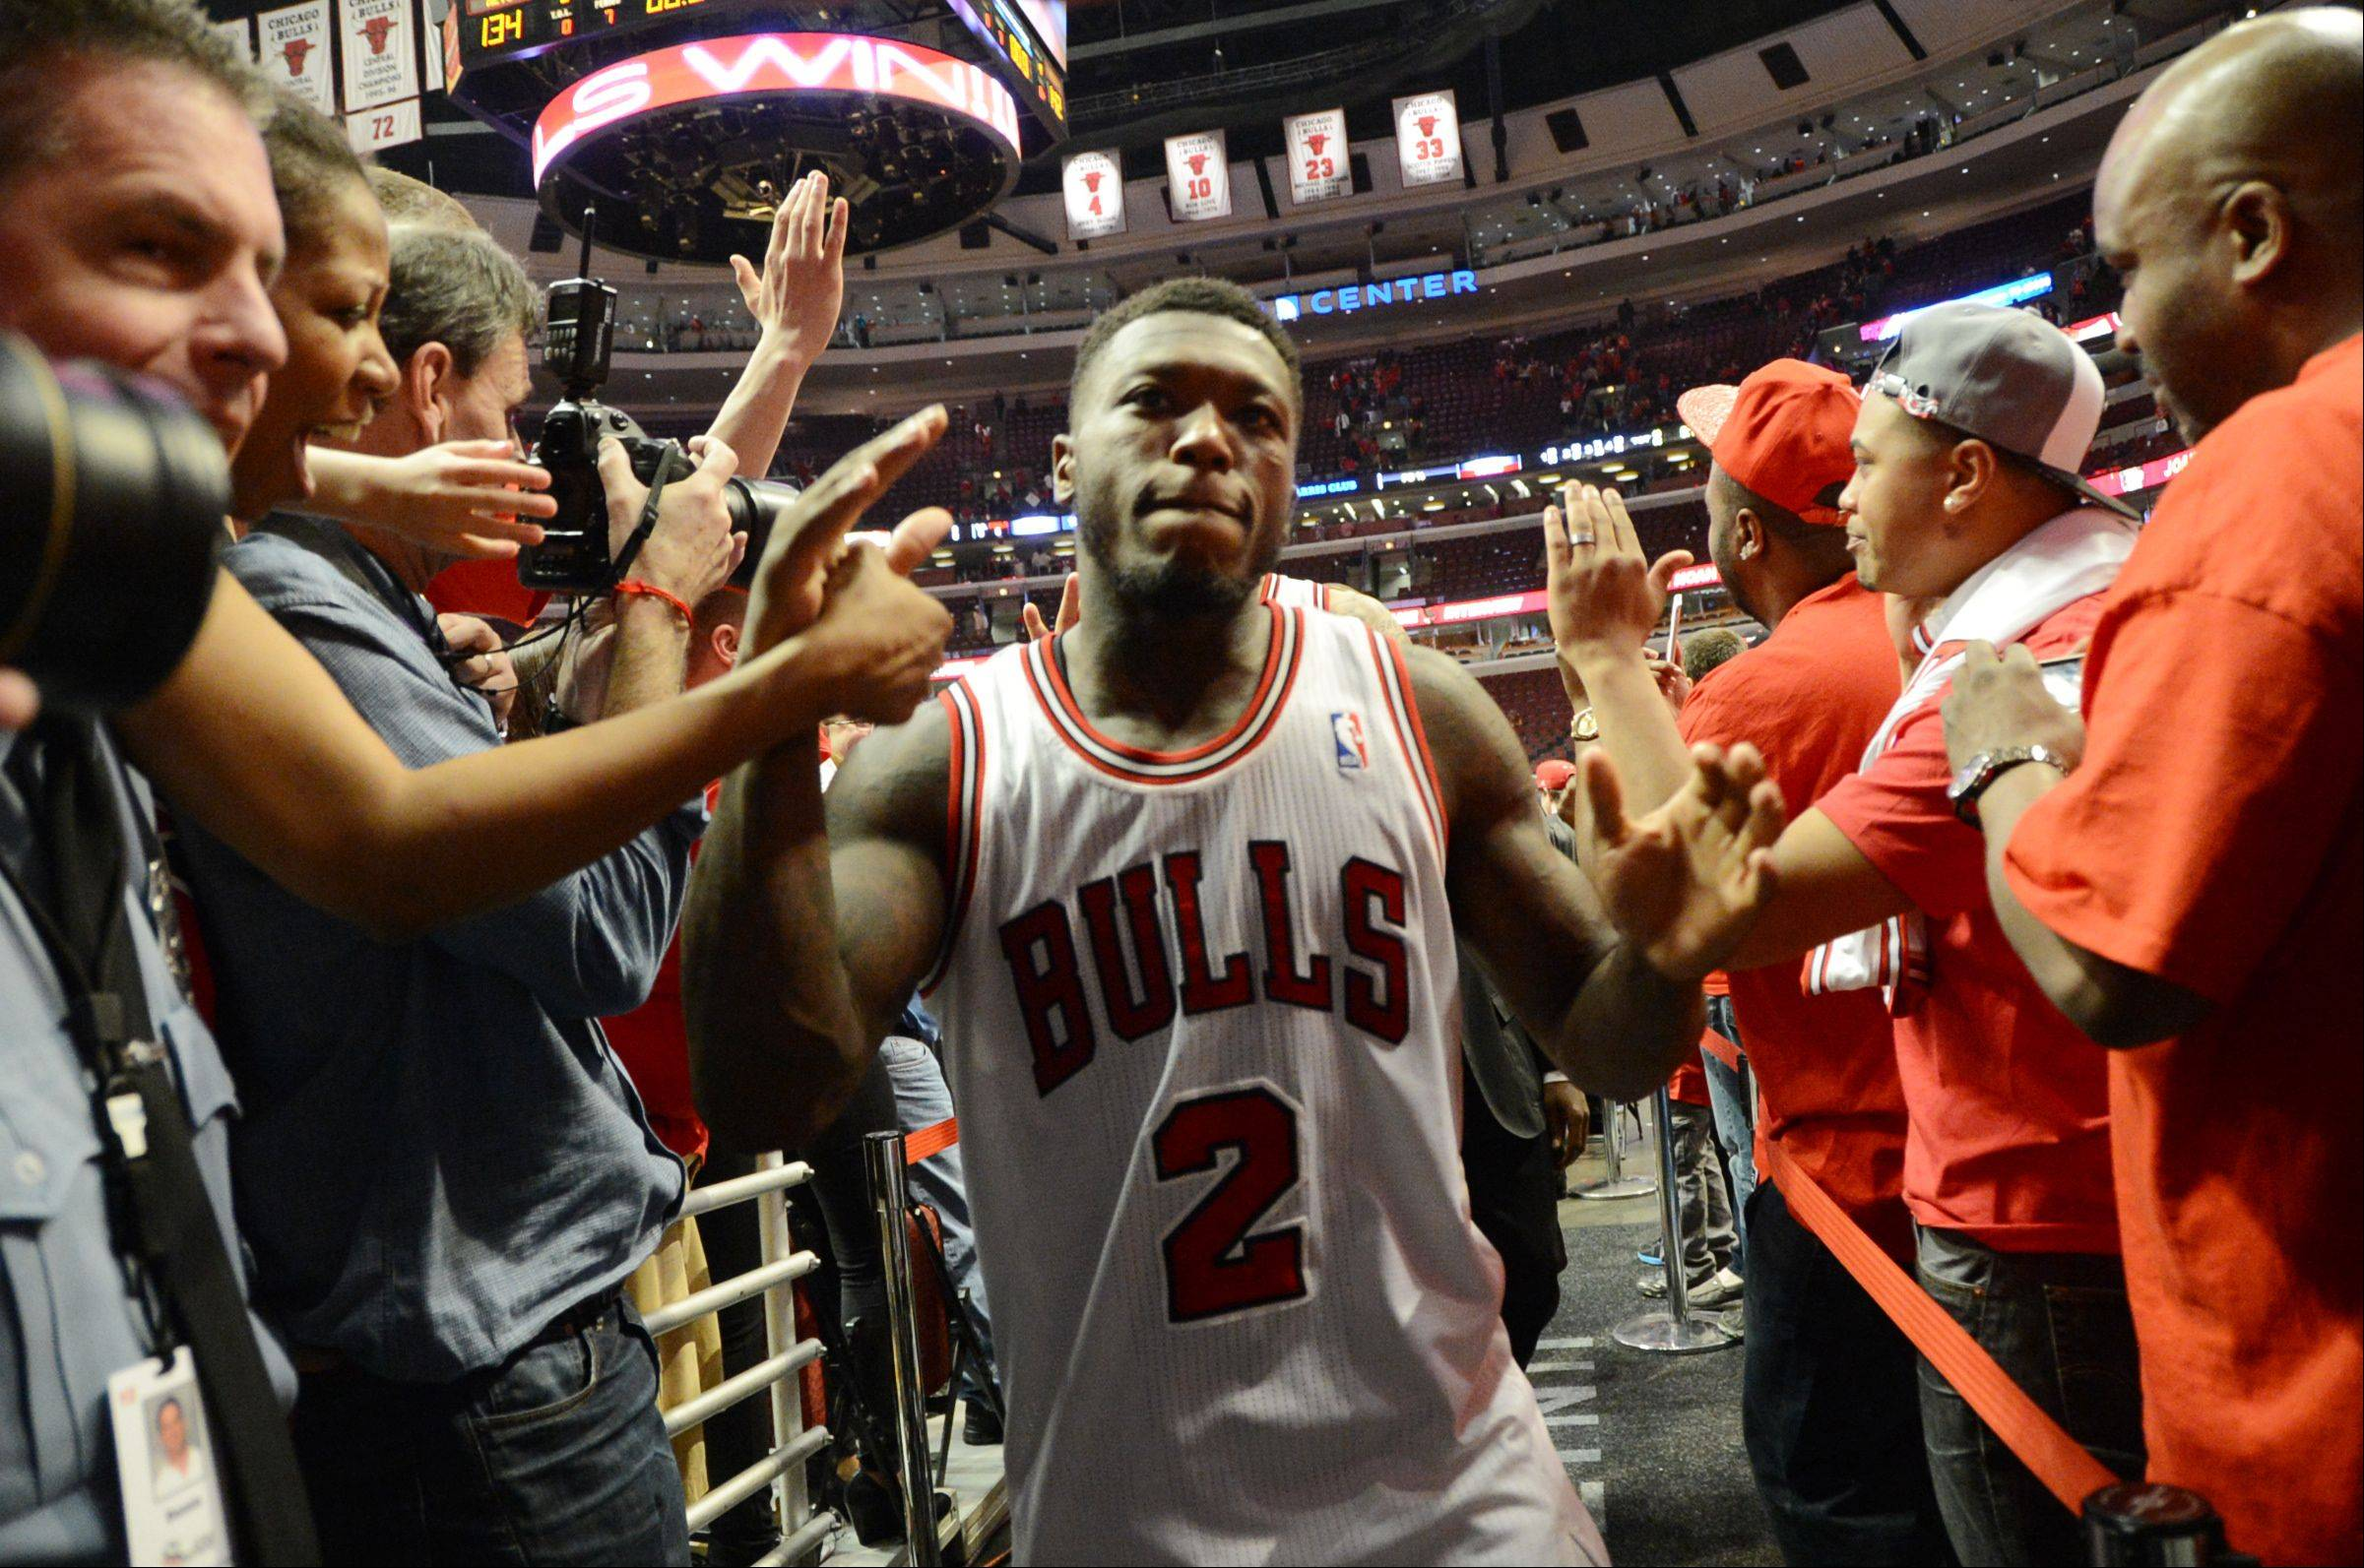 The Bulls Nate Robinson is greeted by fans as he comes off of the court Saturday during game 4 of the first round playoff game against the Brooklyn Nets at the United Center. Robinson was a big part of the Bulls triple overtime victory over the Brooklyn Nets.